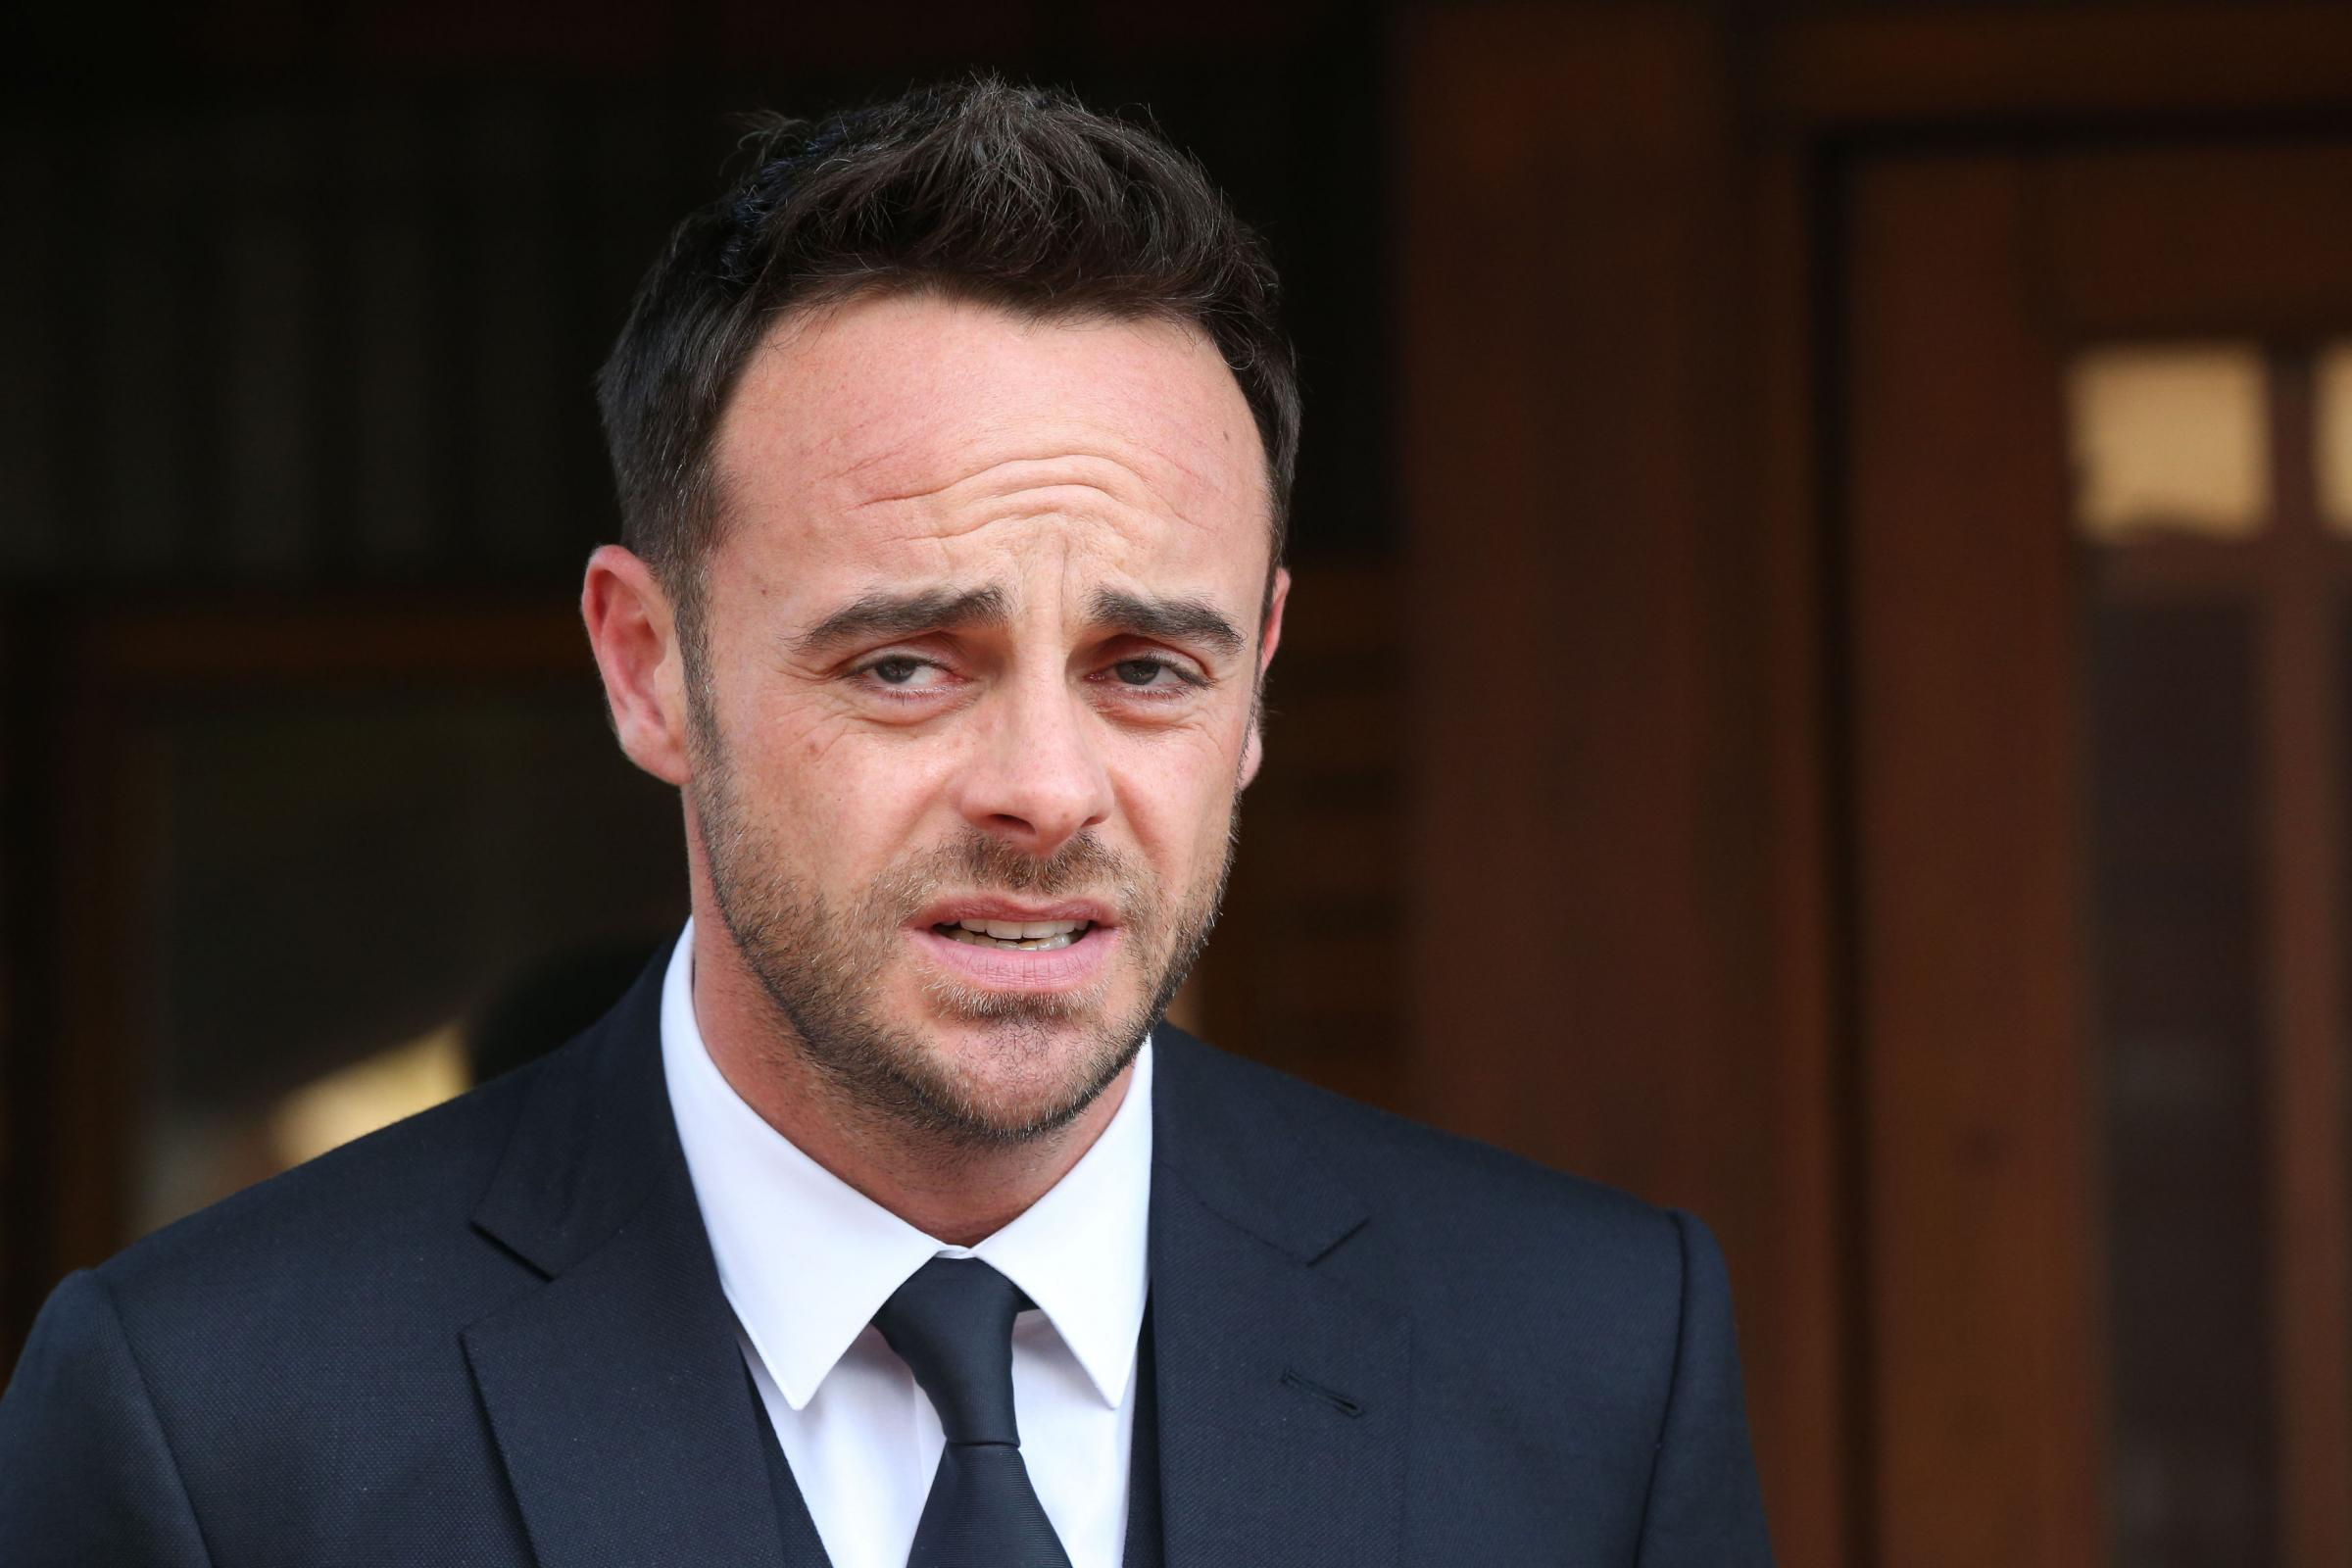 TV presenter Anthony McPartlin outside The Court House in Wimbledon, London, after being fined  86,000 at Wimbledon Magistrates' Court after admitting driving while more than twice the legal alcohol limit. (Jonathan Brady/PA Wire)